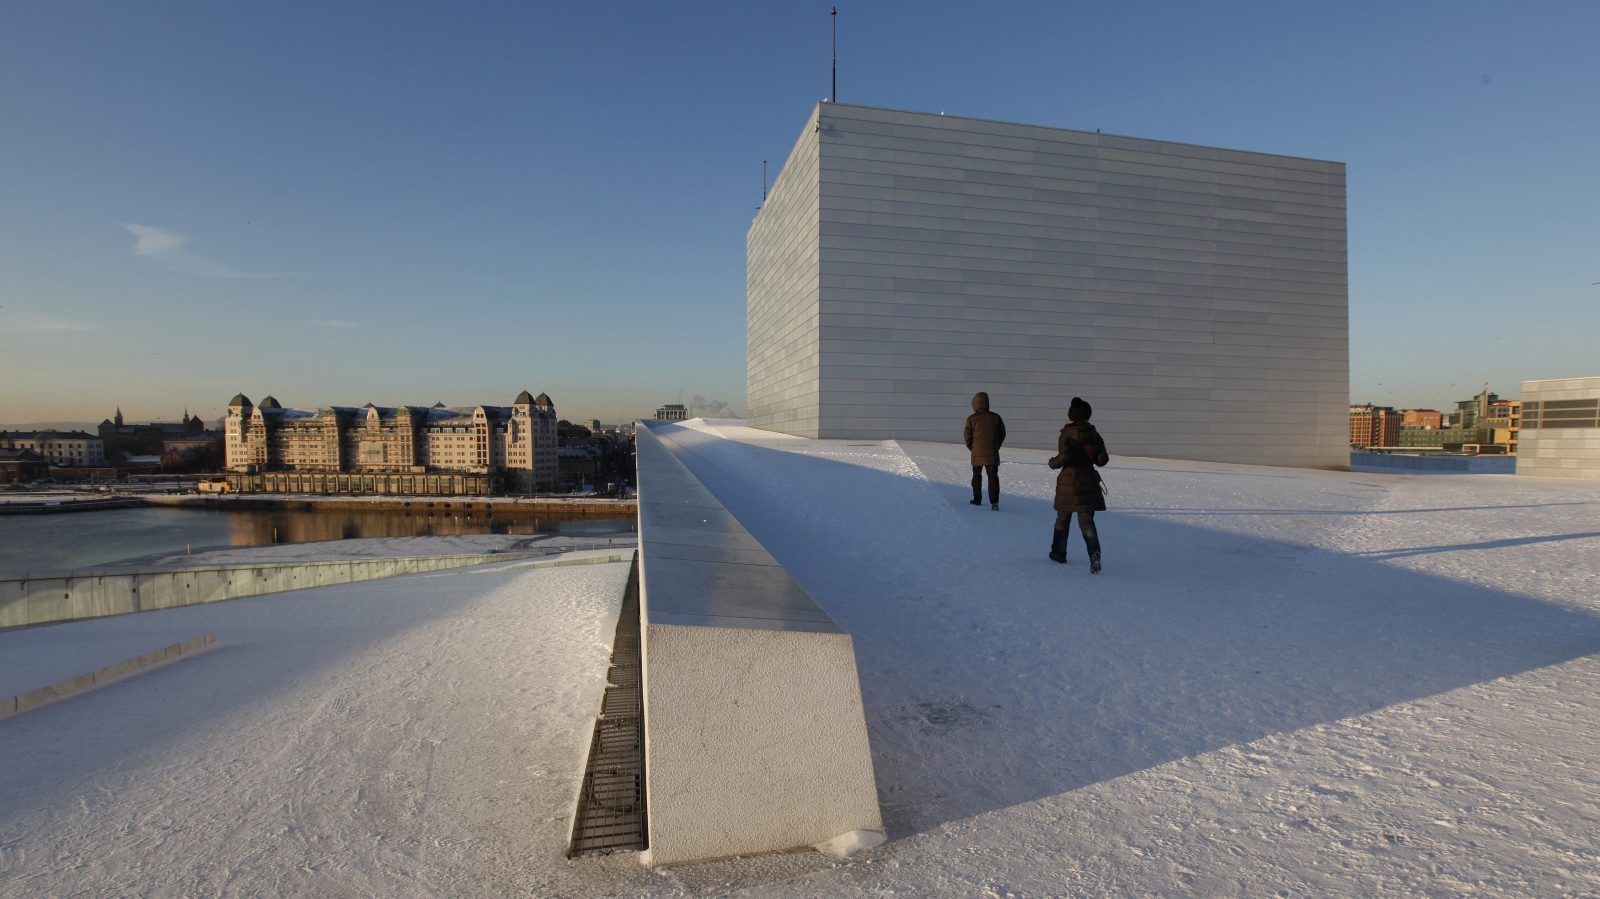 Pedestrians walk around the Opera House during winter in Oslo December 11, 2012. REUTERS/Suzanne Plunkett (NORWAY - Tags: ENTERTAINMENT CITYSCAPE ENVIRONMENT) - RTR3BGCL